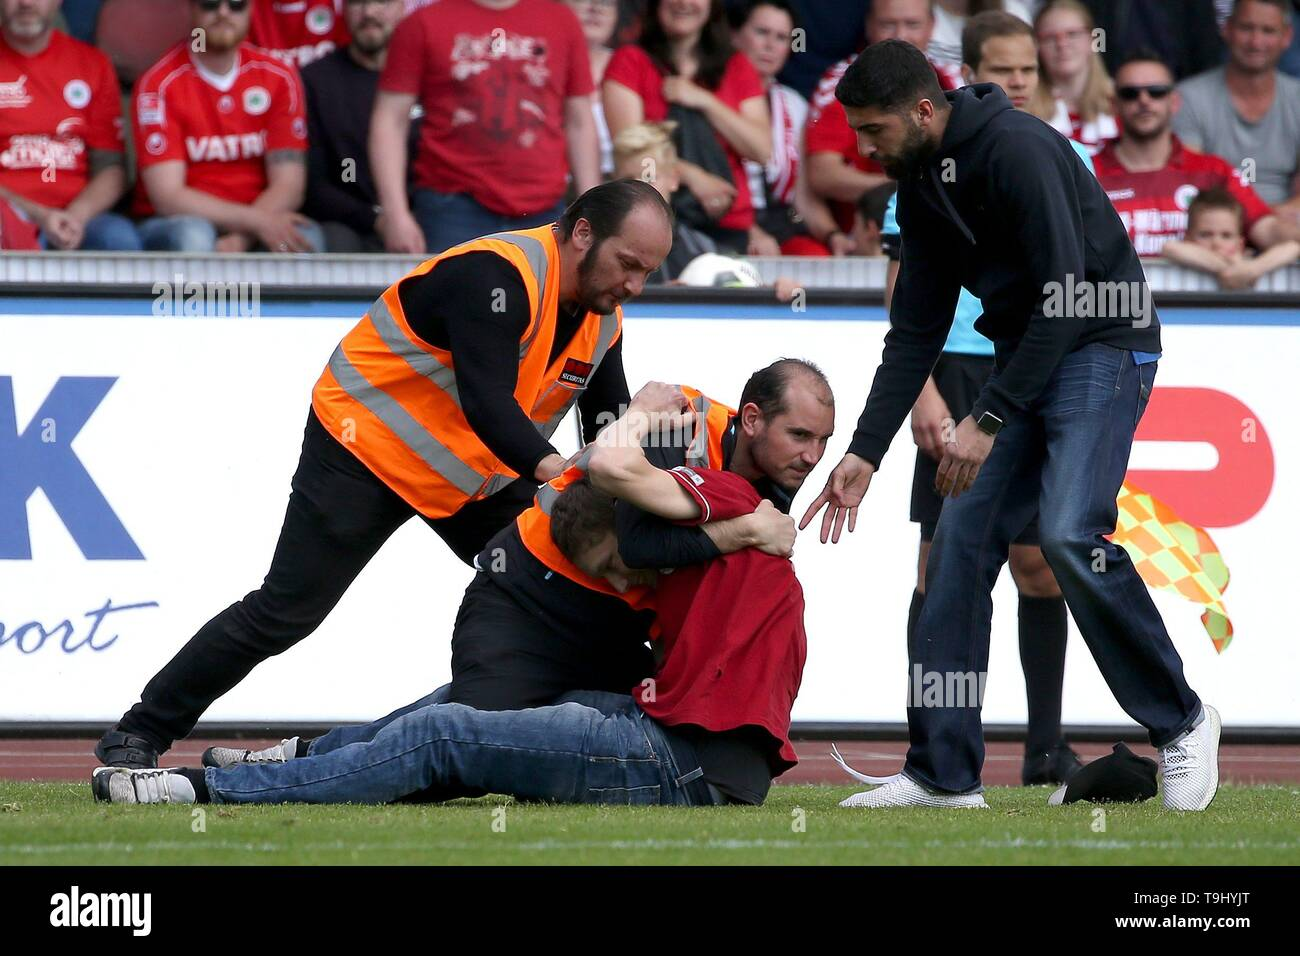 Oberhausen, Germany. 18th May, 2019. firo: 18.05.2019 Football, Regionalliga West, season 2018/2019 Rot-Weiss Oberhausen - SC Verl No chance to escape for the speedster. | usage worldwide Credit: dpa/Alamy Live News - Stock Image